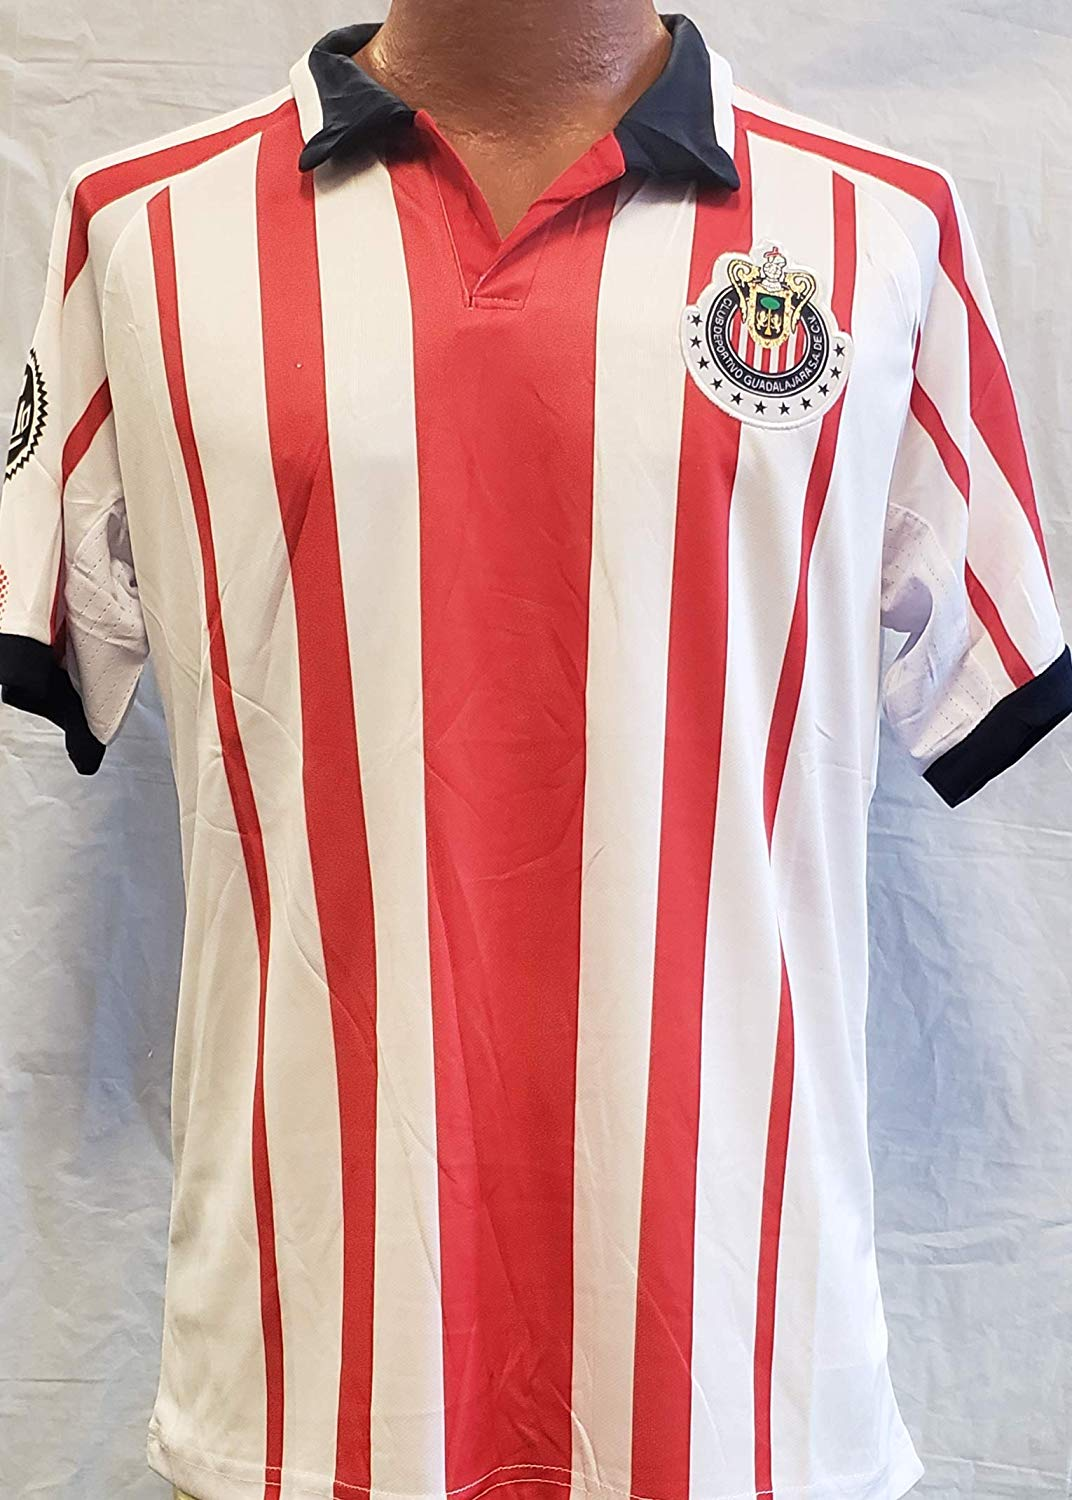 newest collection bcd78 1fa8e Cheap Chivas Games, find Chivas Games deals on line at ...